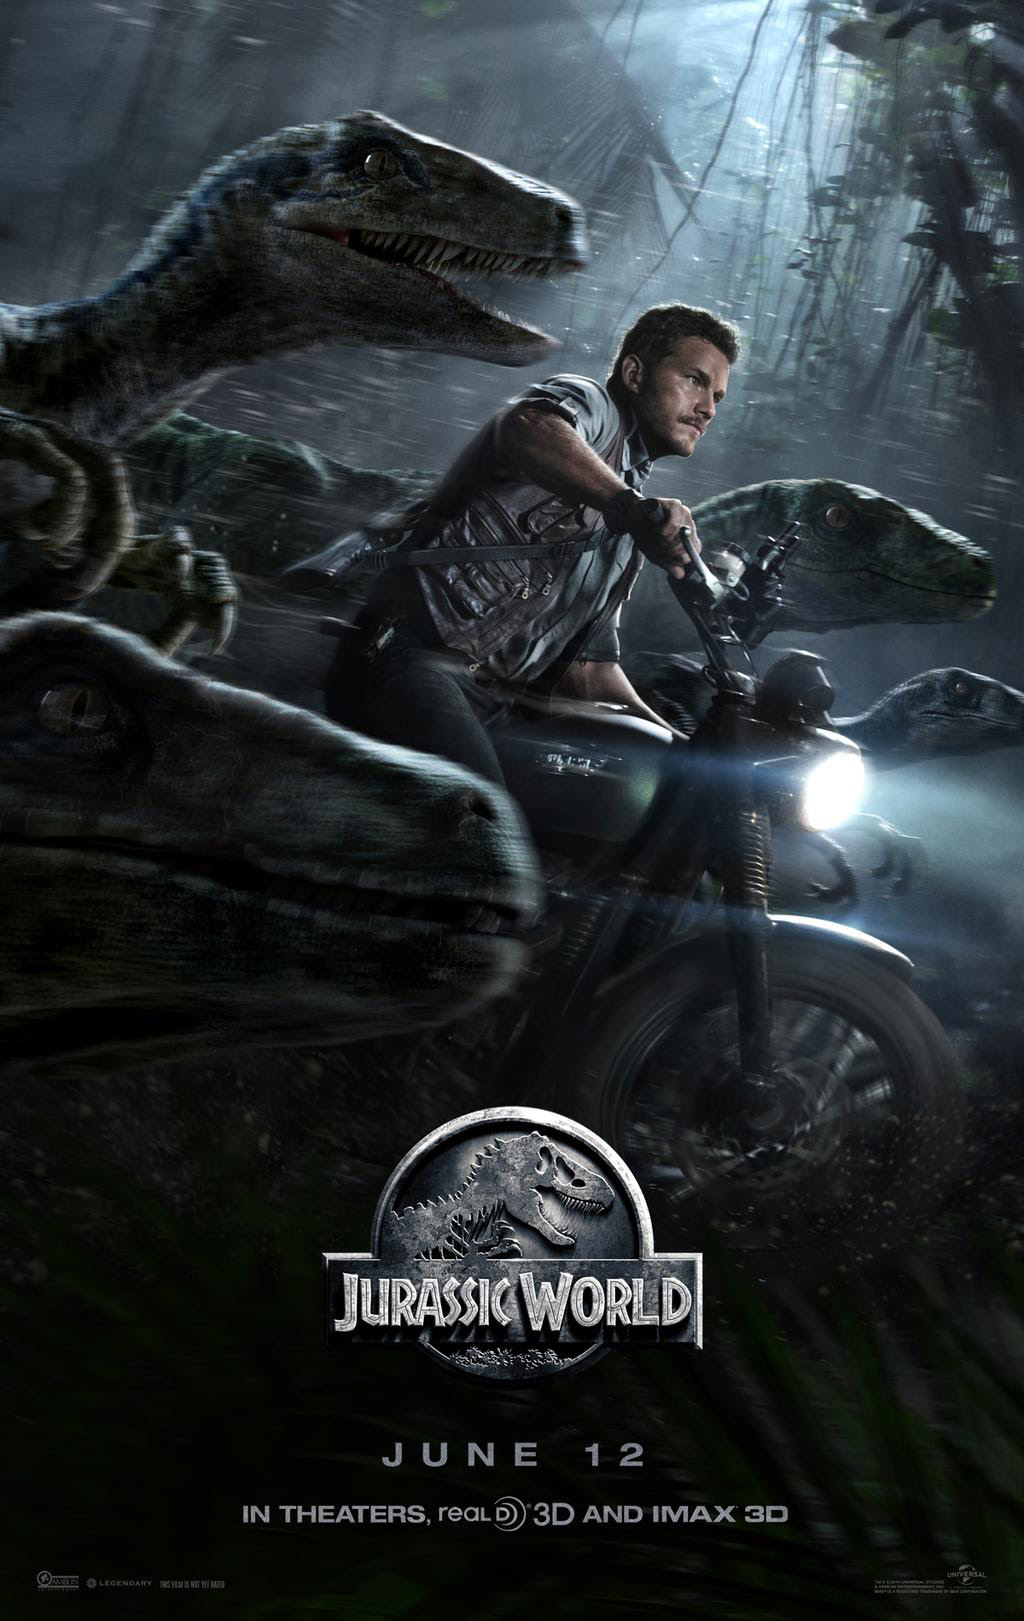 http://screenrant.com/wp-content/uploads/jurassic-world-own-raptors-poster.jpg